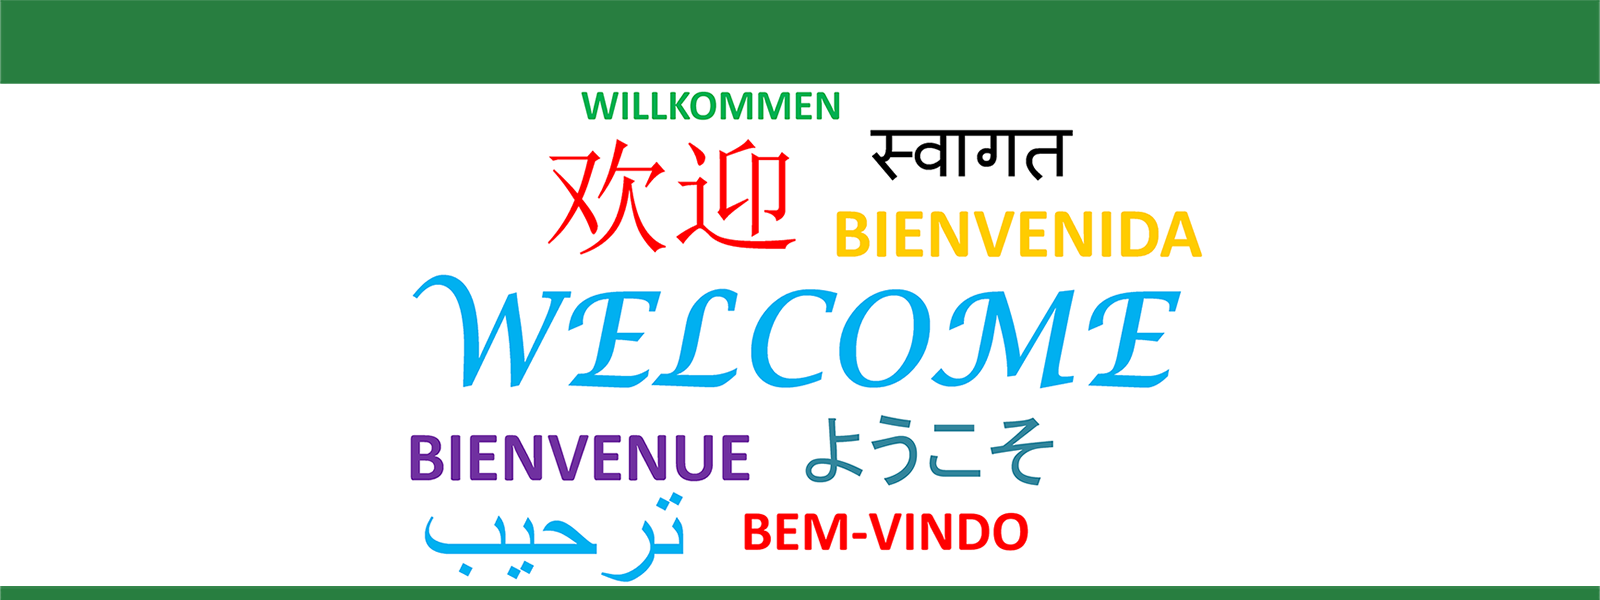 WelcomeHomePage1600x600